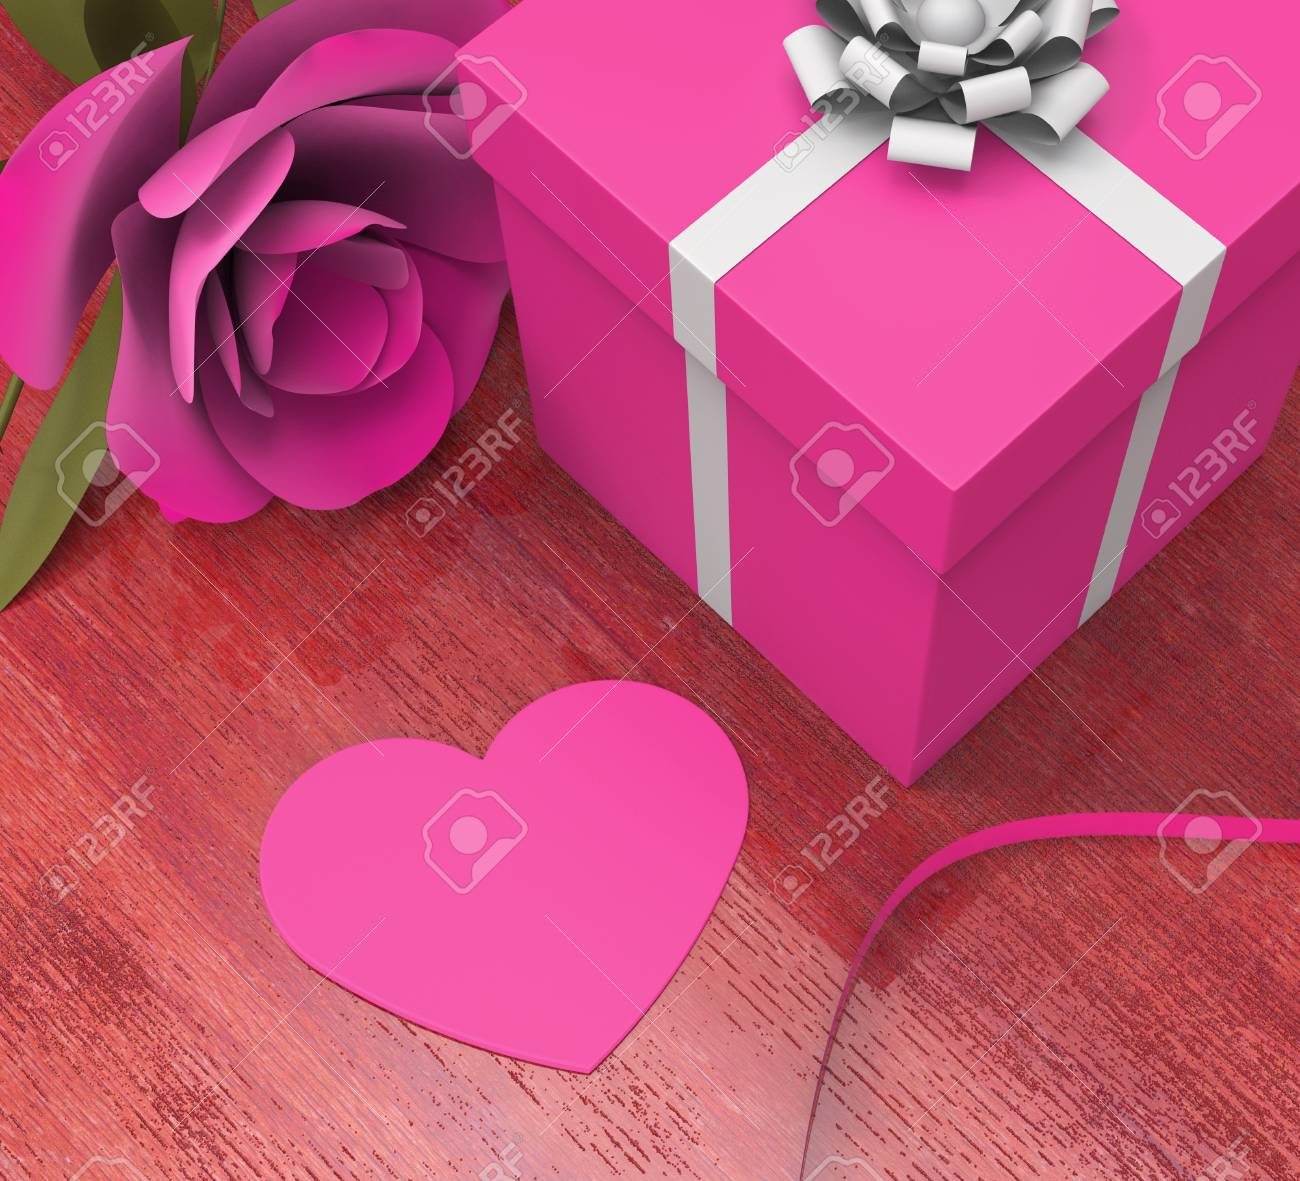 Gift Card Meaning Valentines Day And Bloom Stock Photo, Picture And ...